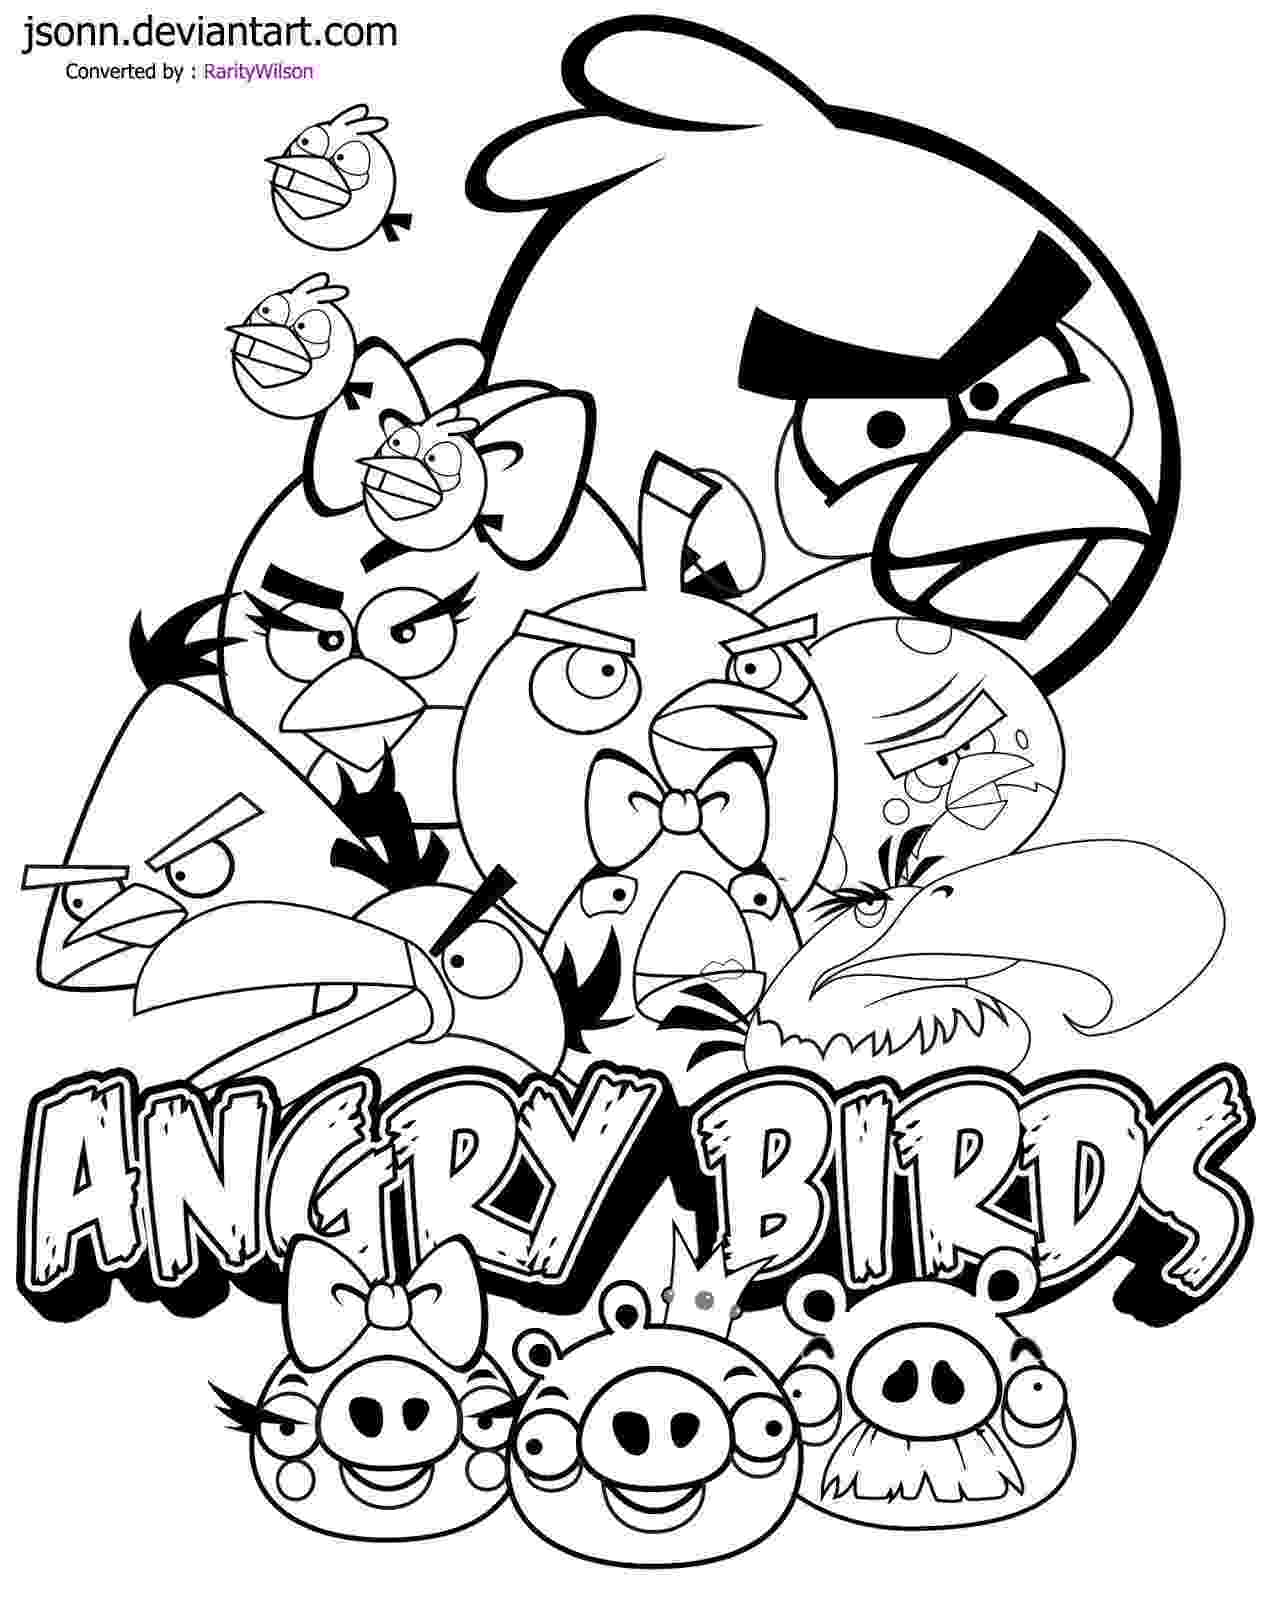 colouring pages angry birds go angry birds kids coloring pages amp blogger design pages go colouring birds angry